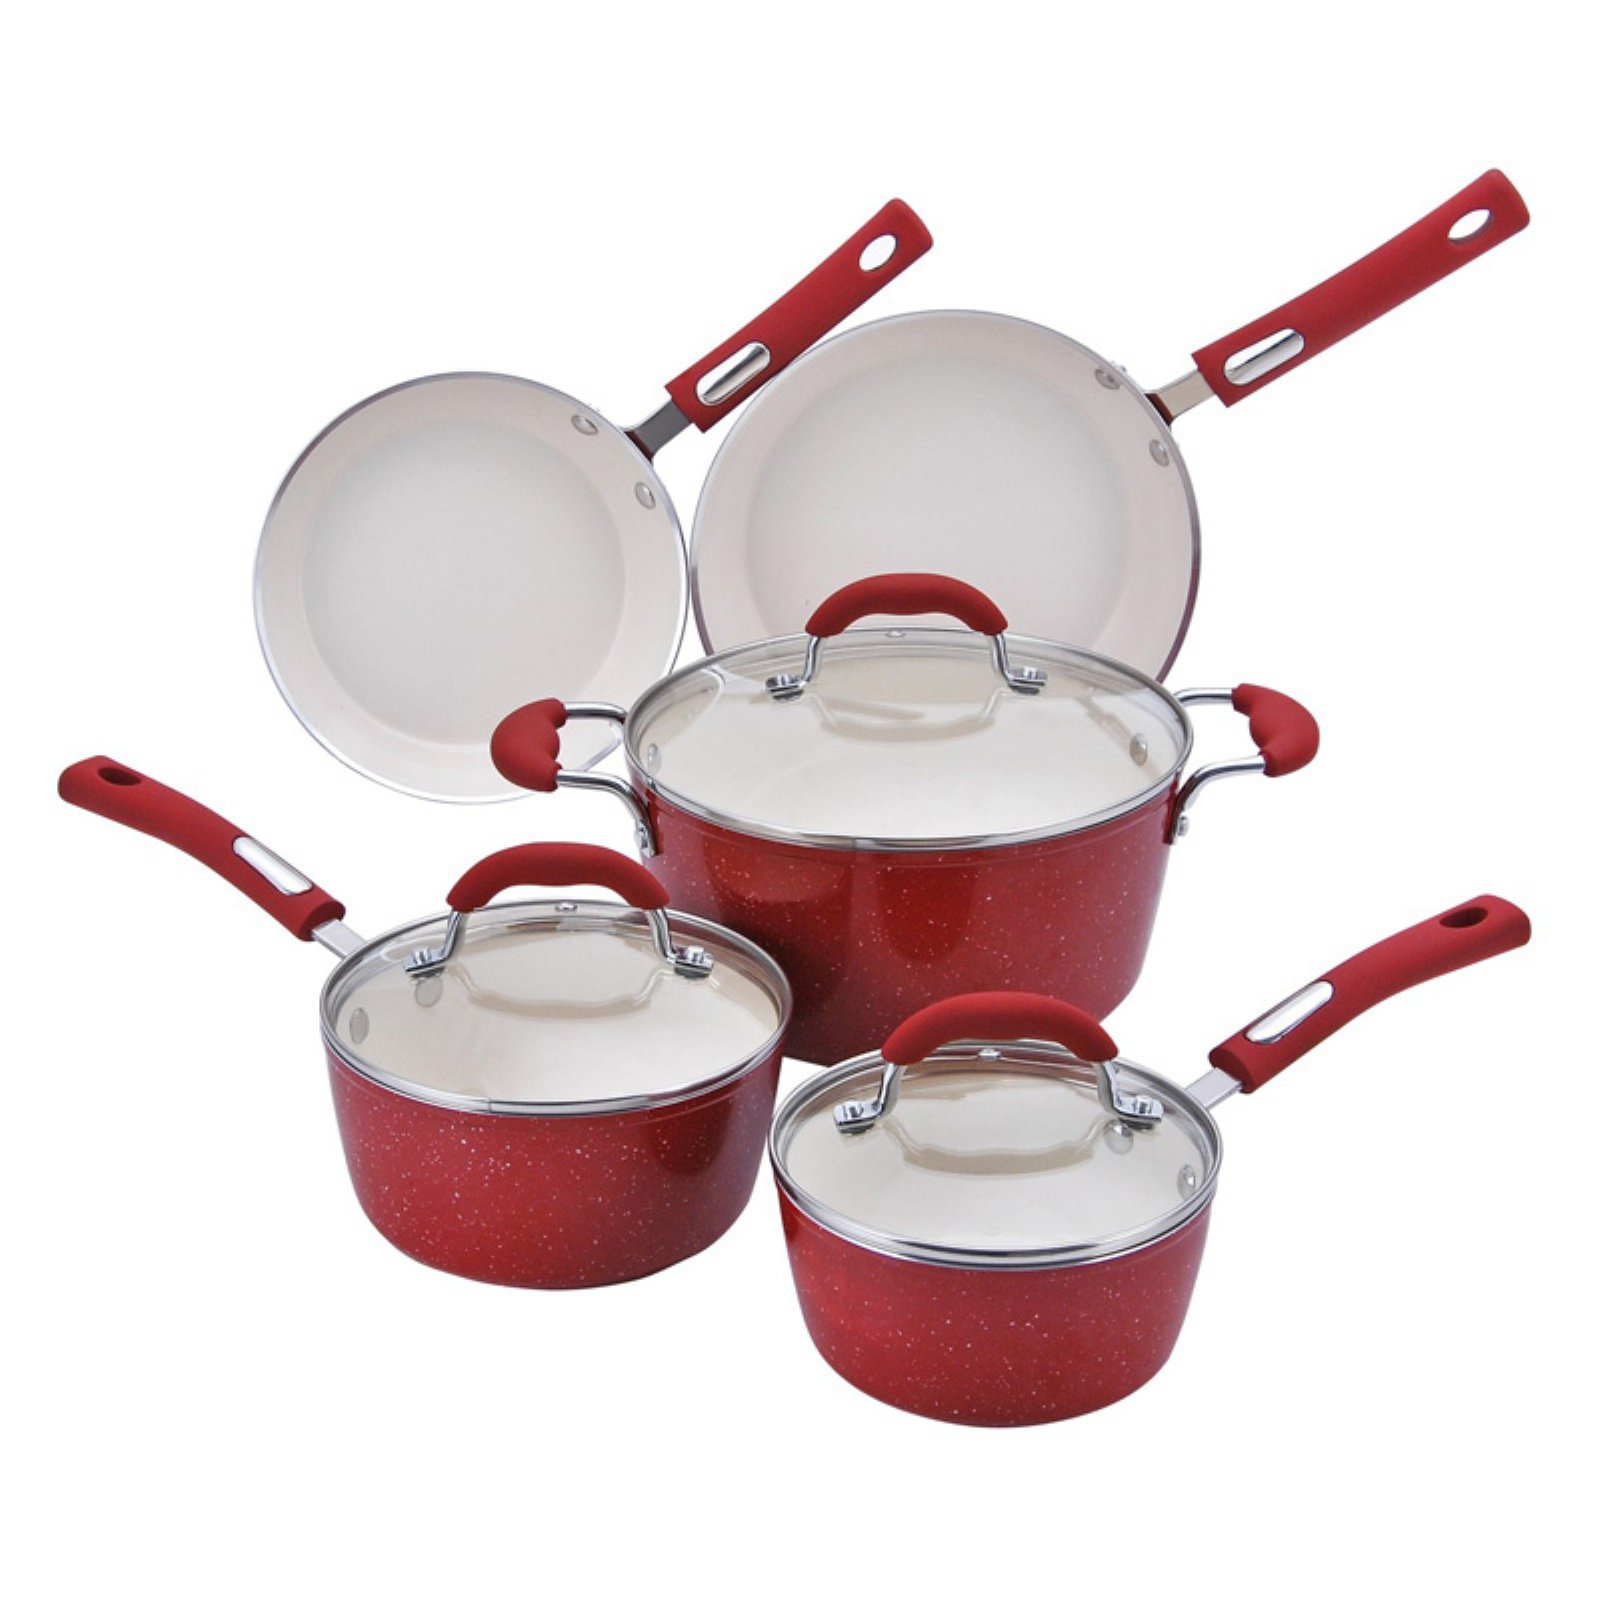 Hamilton Beach 8pc Aluminum Cookware Set, 3.0mm Forged, Red Speckled Procelain Enamel, Cream Ceramic Non-Stick